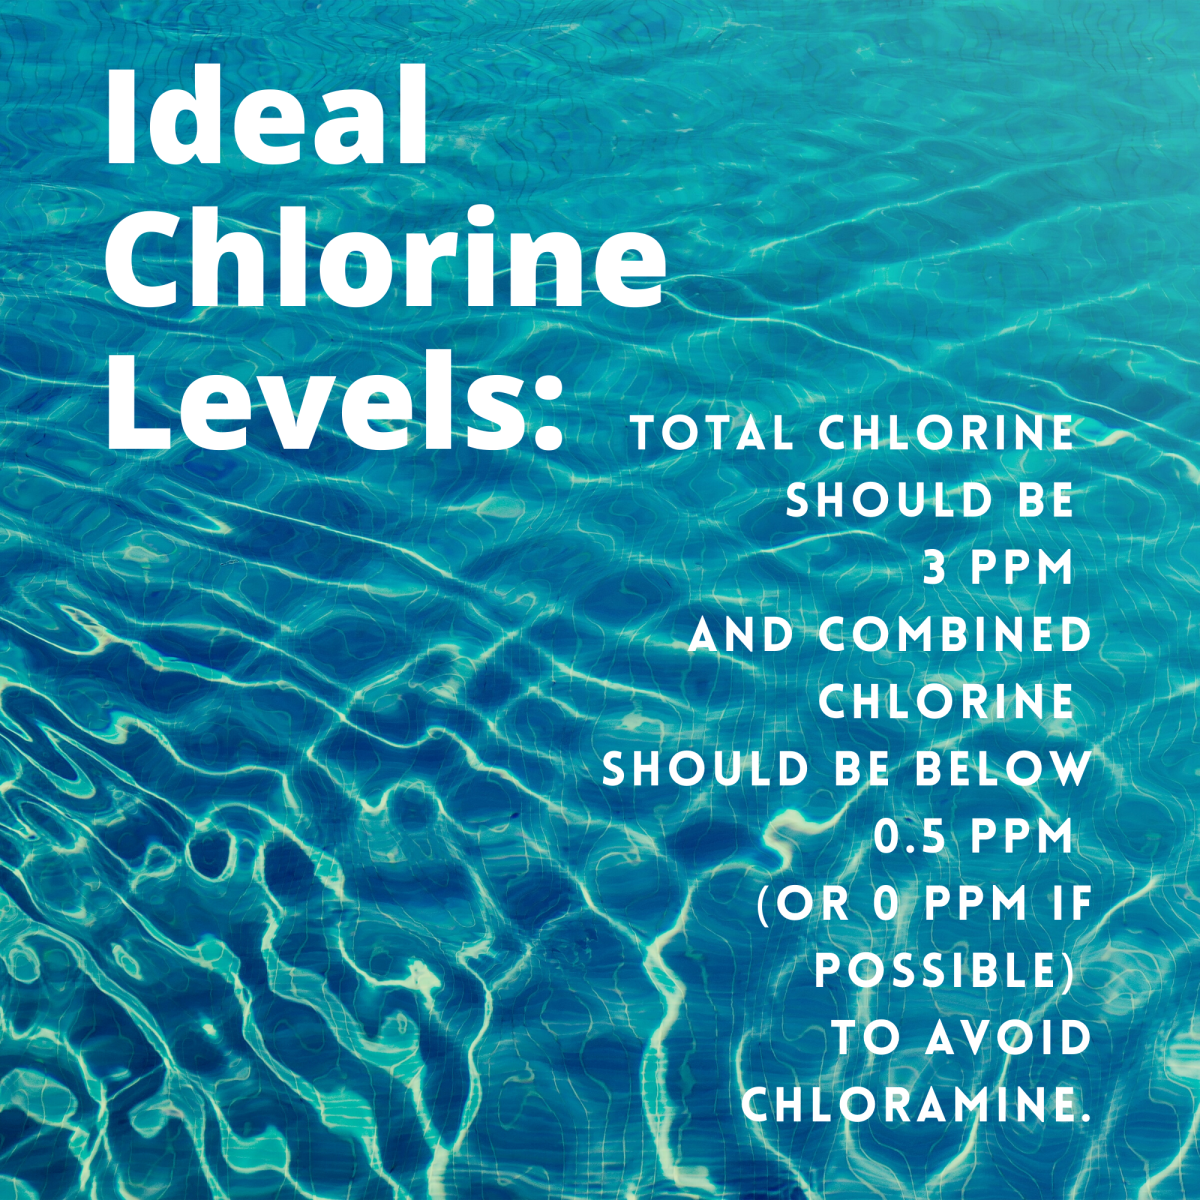 Ideal chlorine and combined chlorine to avoid chloramine in your pool.